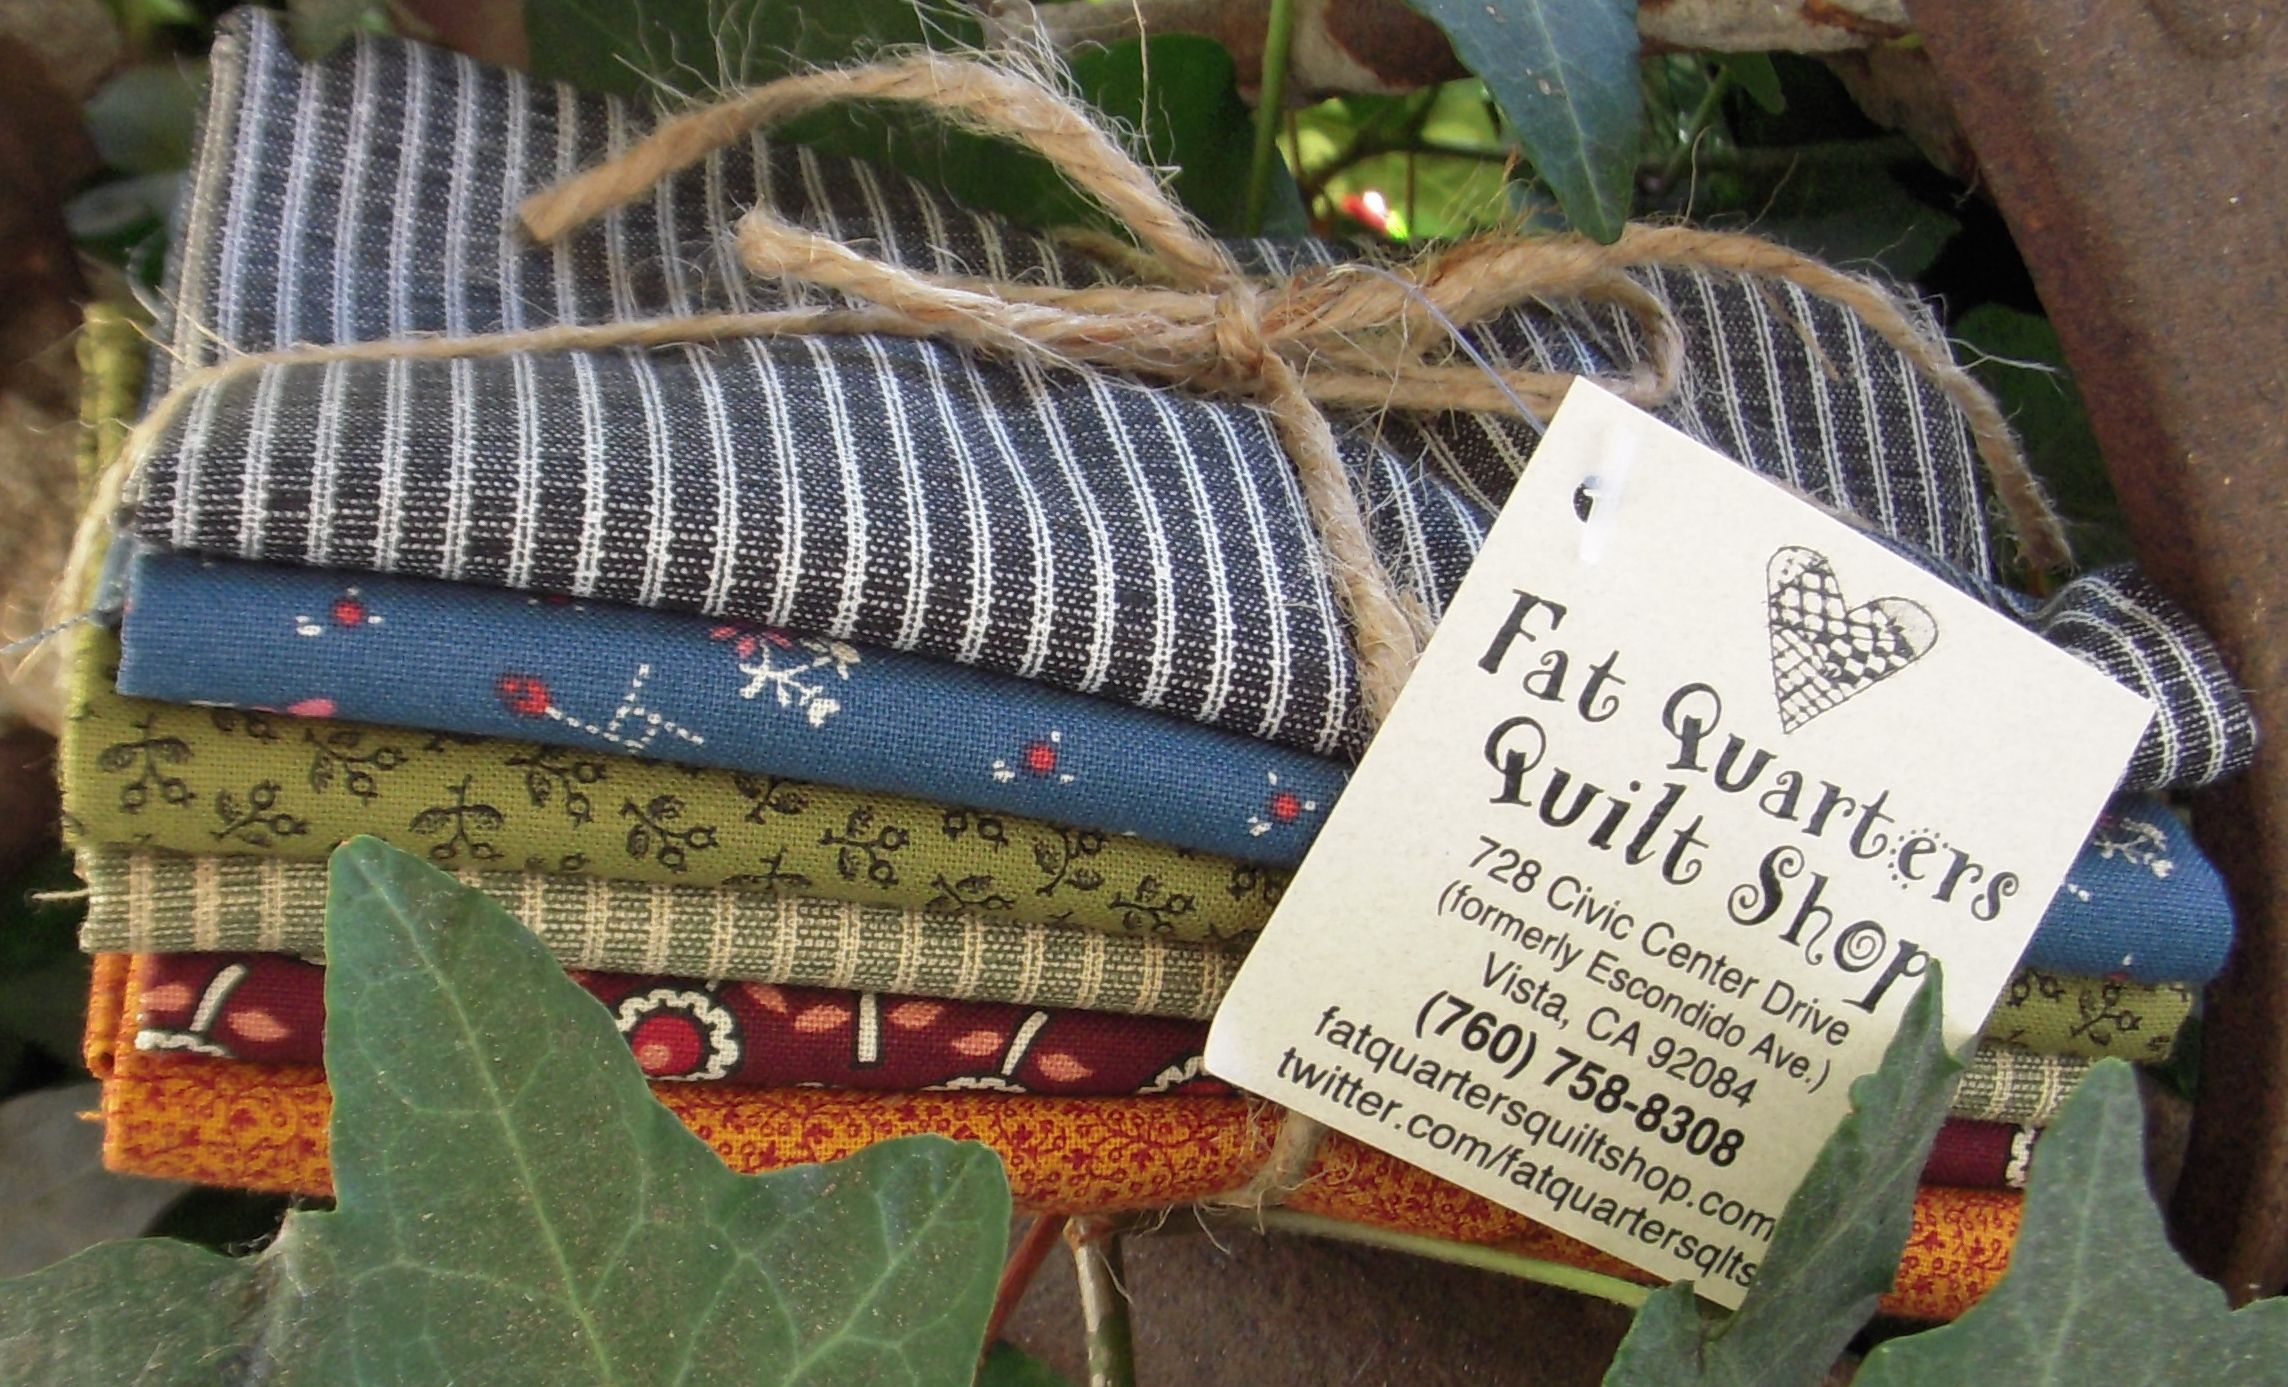 NEW Cheri's Picks... we are so very lucky to have the wonderfully imaginative & talented Cheri Payne frequent our quilt shop. And when Cheri shops we pay close attention... here is a fat quarter bundle of the fabrics Cheri selected when she was in the shop last Thursday... YOU know you will want to have these when you see what Cheri created using them ;-) 6 fat quarters... bundle price $18.00 :) when will we see YOU at the shop?